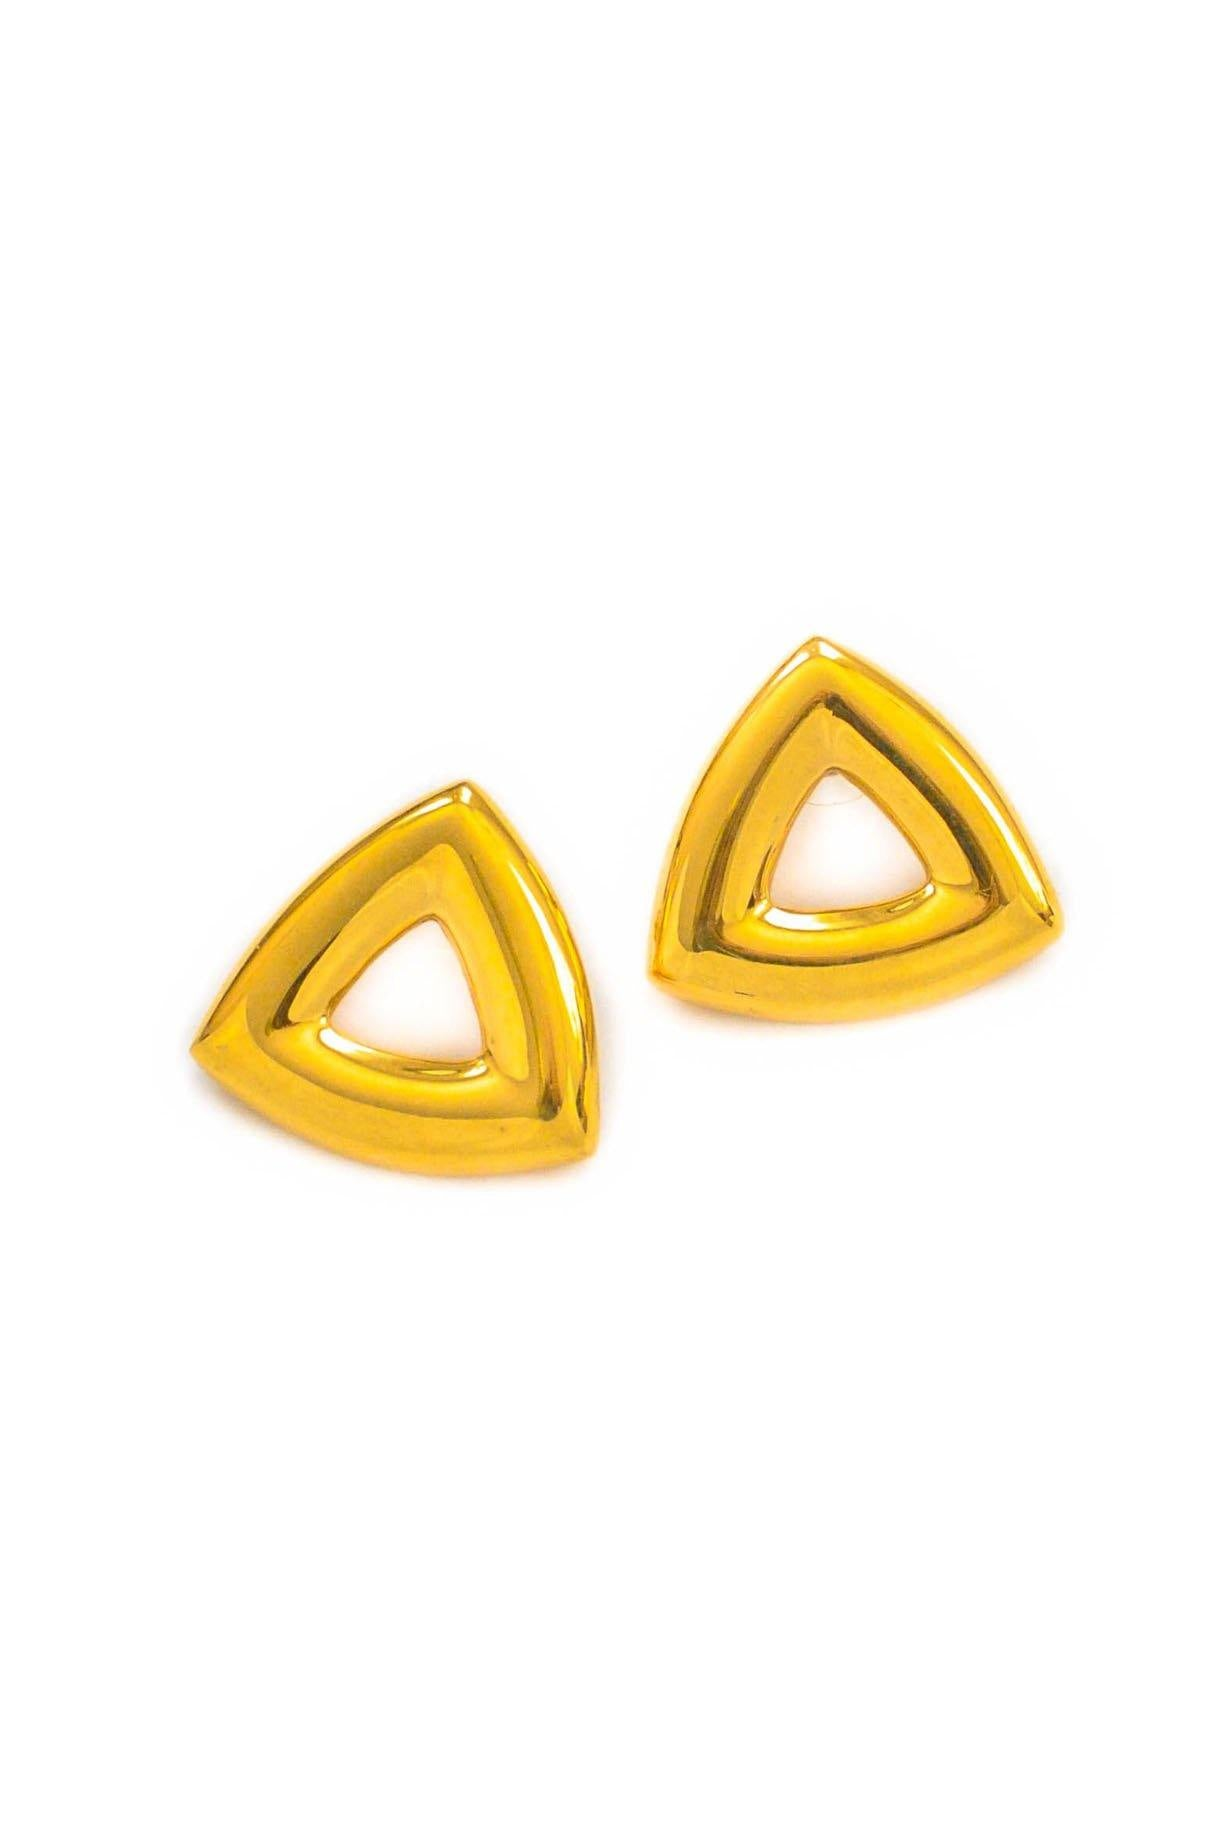 Vintage Triangle Pierced Earrings from Sweet and Spark